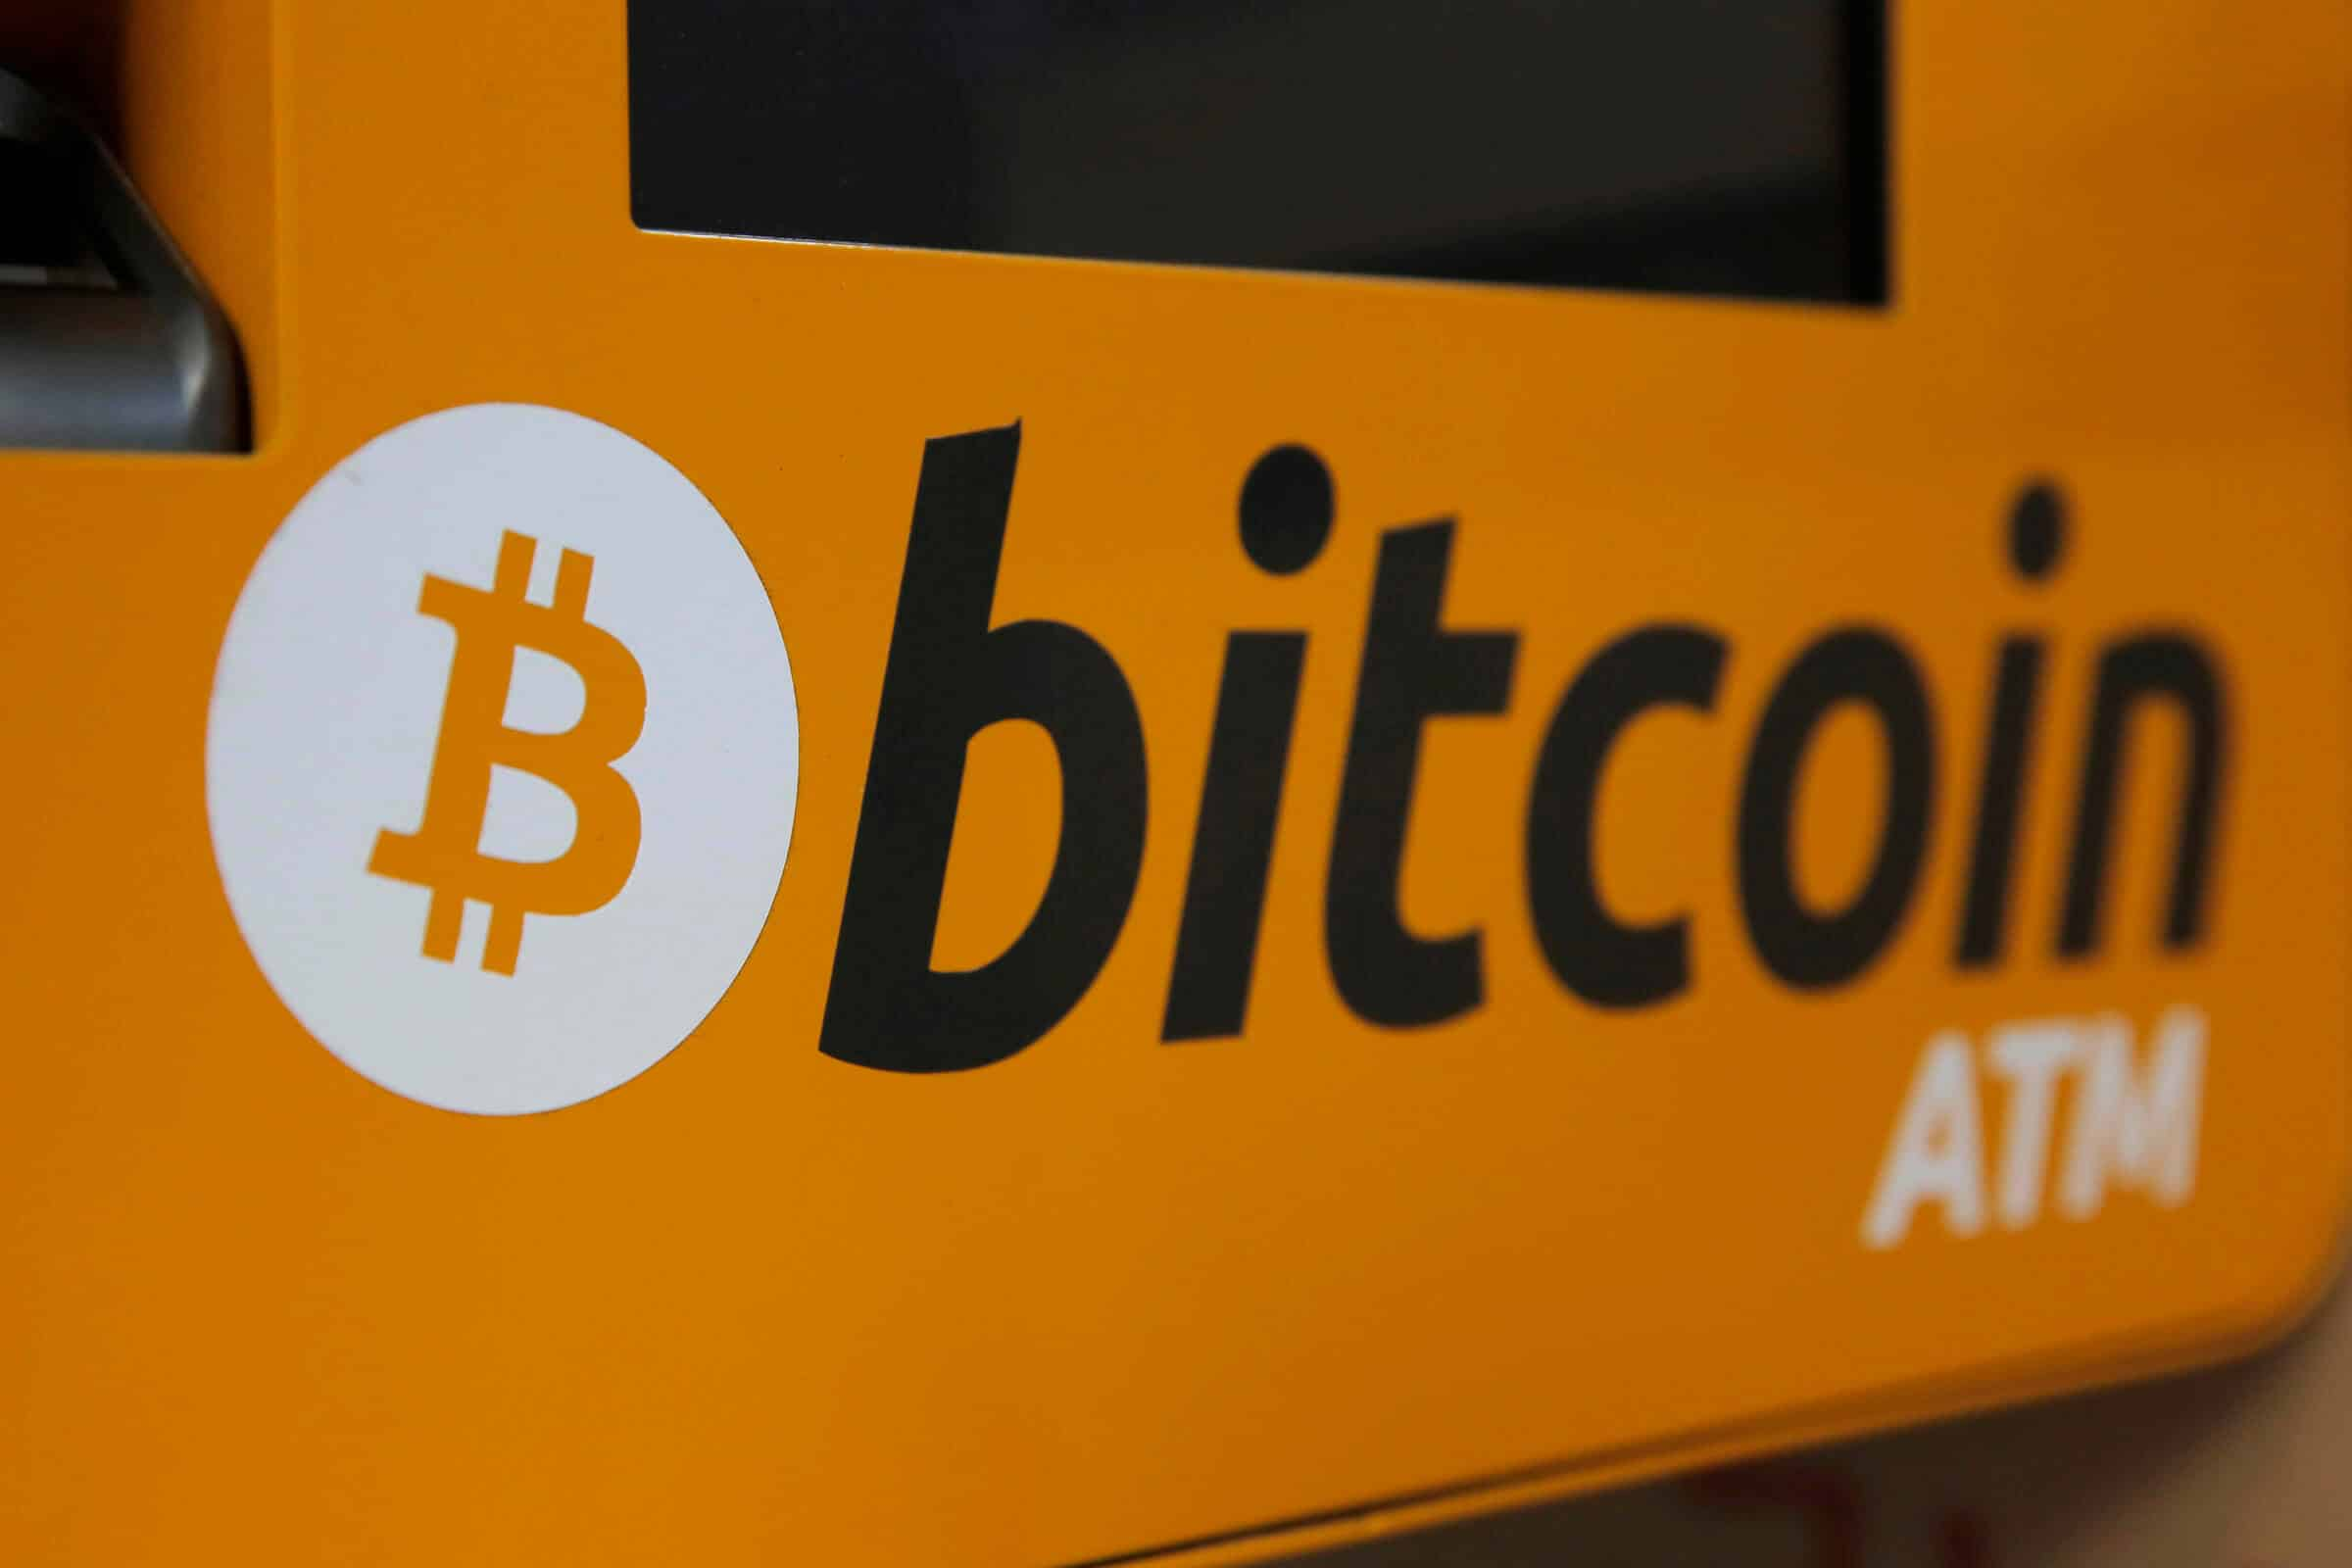 Nigeria Launches Its First Bitcoin ATM